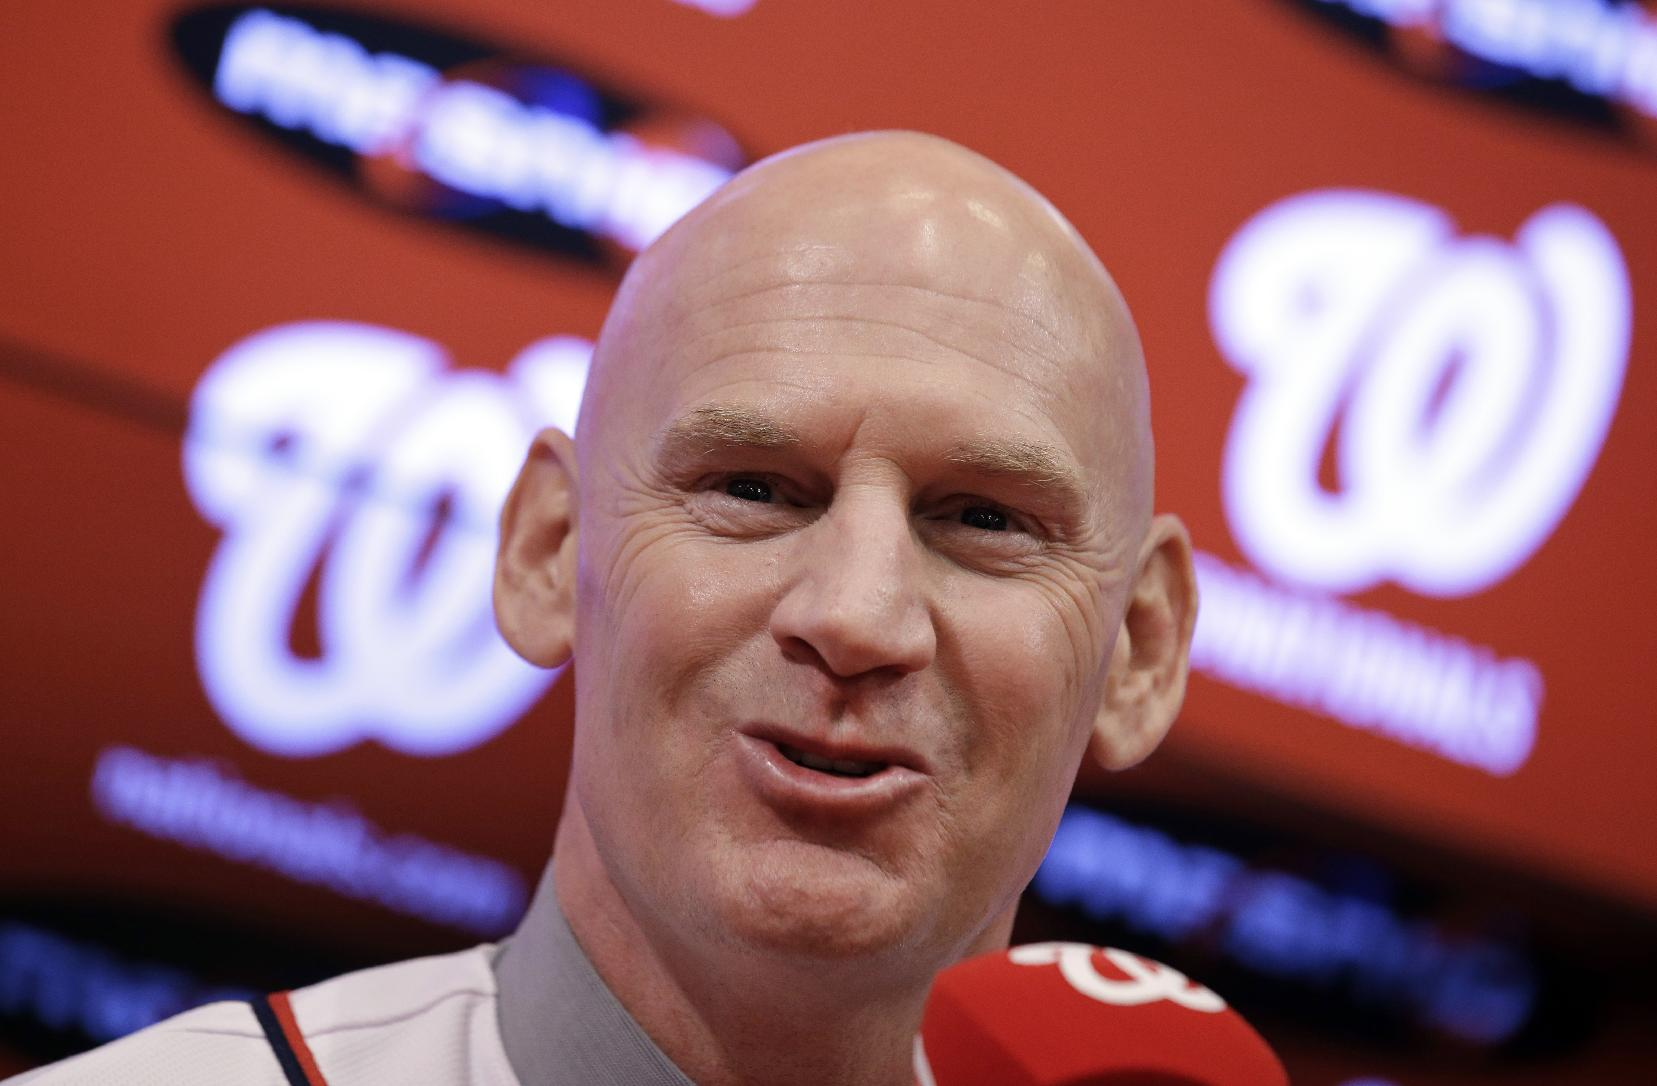 Matt Williams addresses the media after he is introduced as the new manager of the Washington Nationals baseball team during a news conference at Nationals Park, Friday, Nov. 1, 2013, in Washington